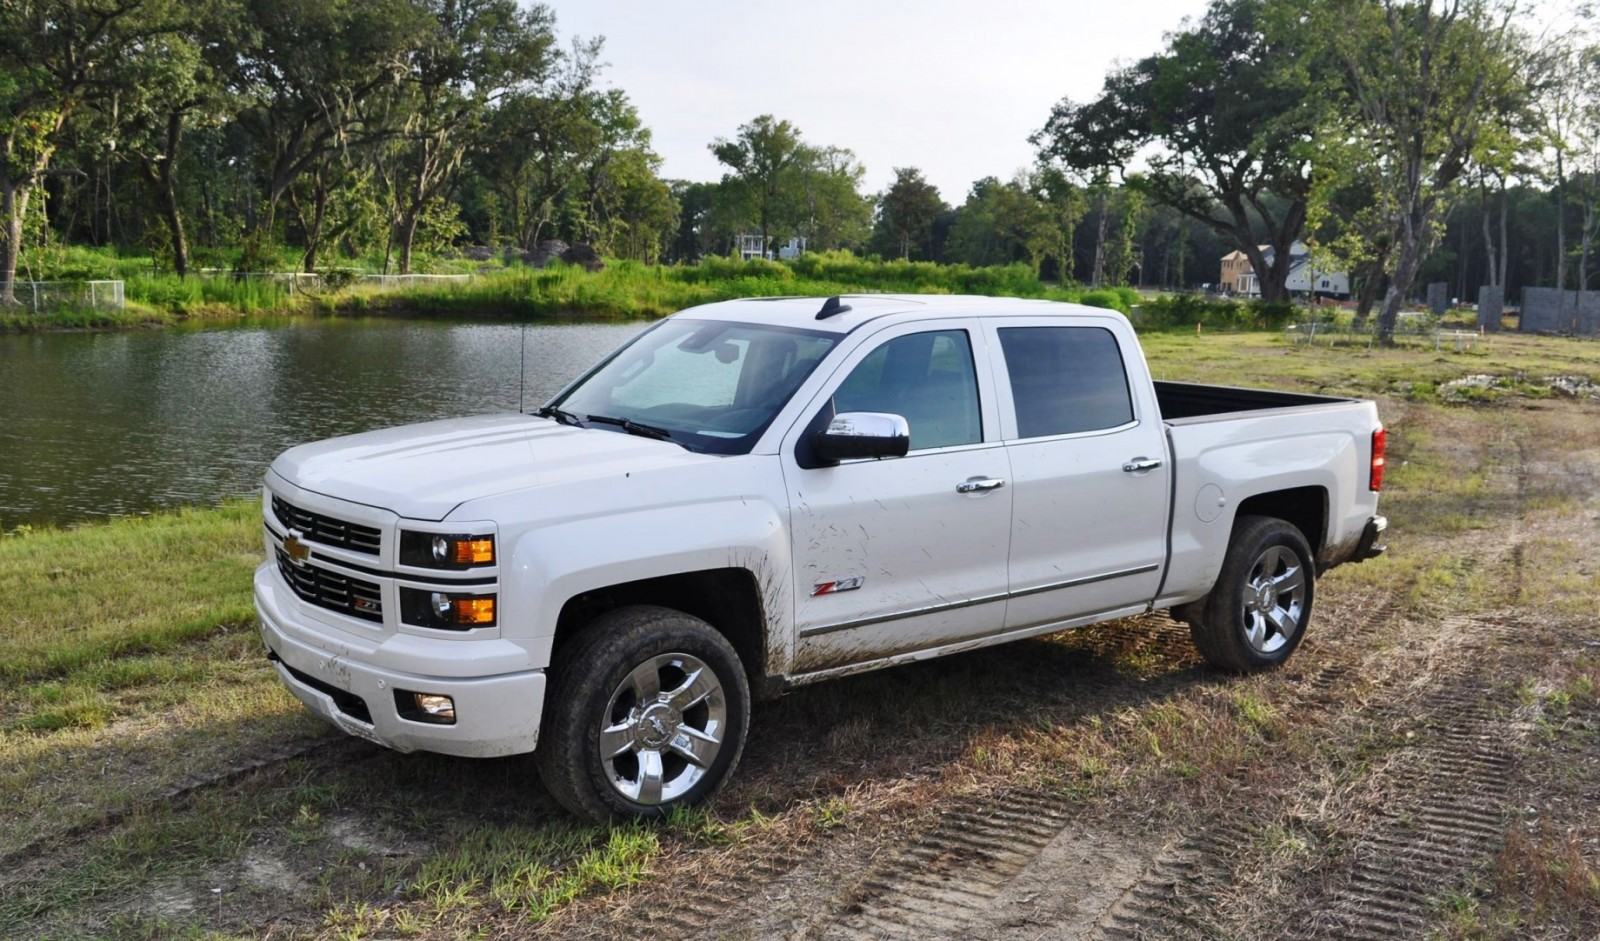 2015 chevrolet silverado ltz z71 4wd custom sport edition 22 car revs. Black Bedroom Furniture Sets. Home Design Ideas